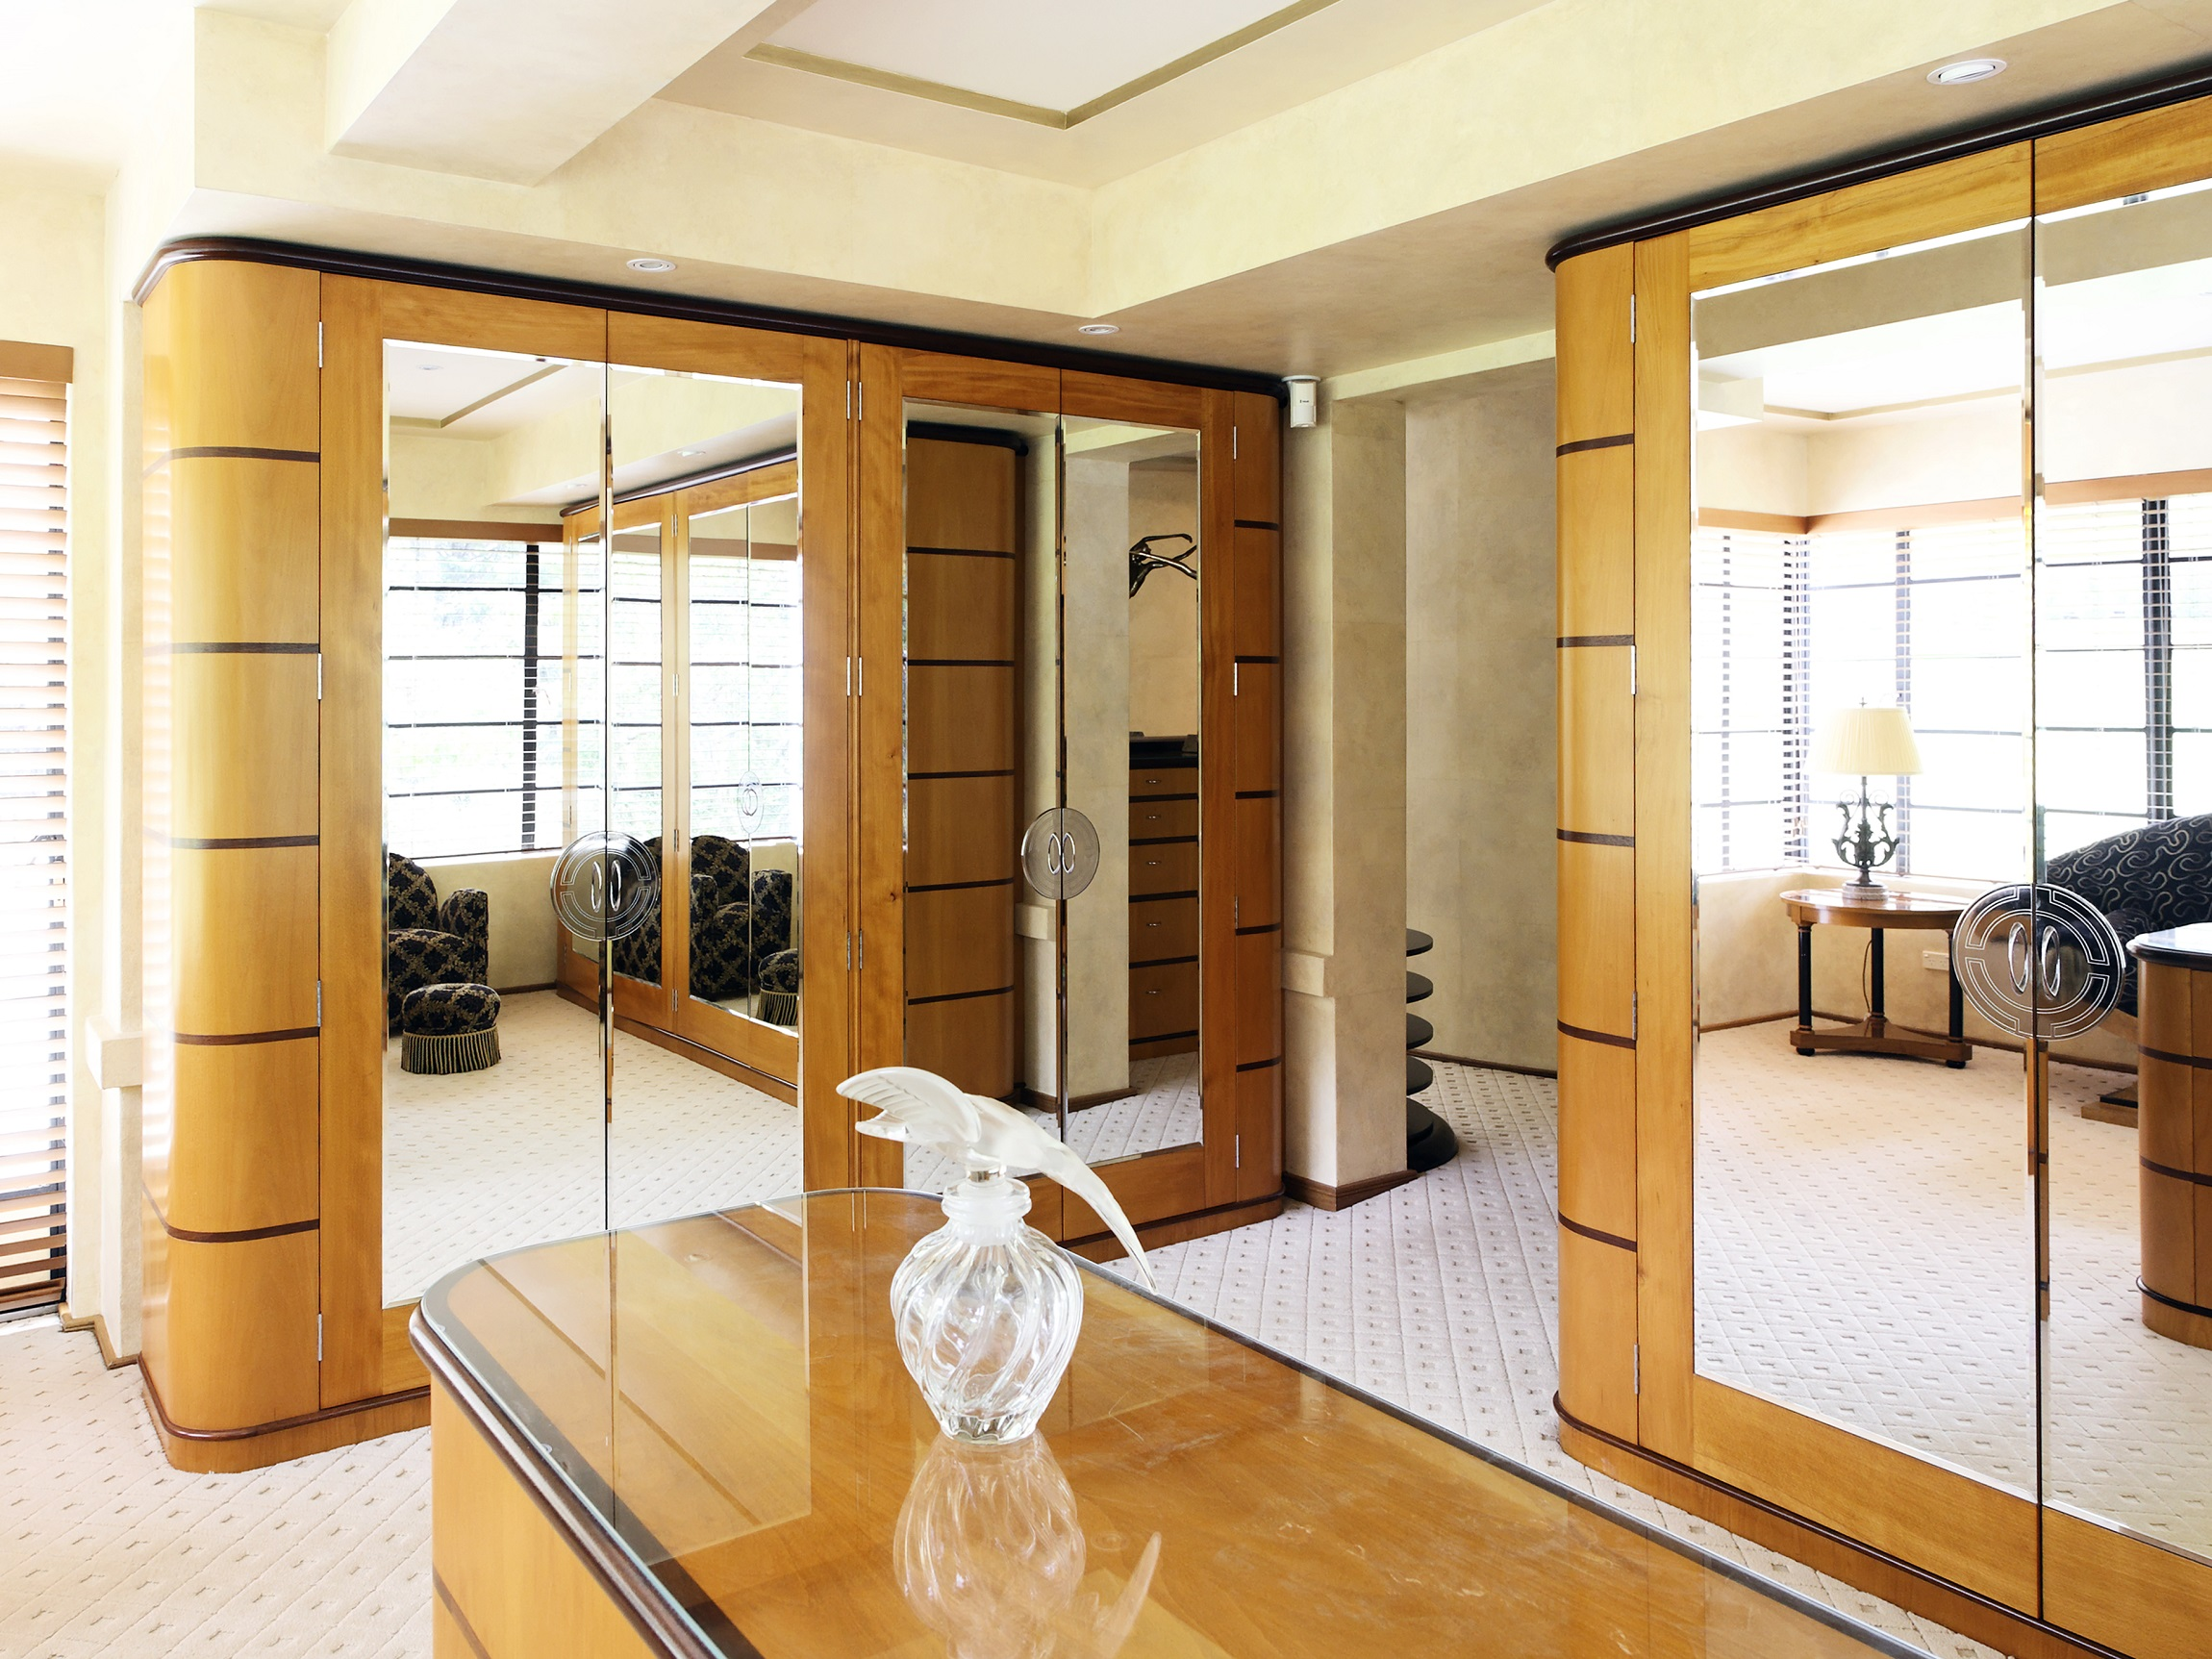 Art-Deco-Bedroom-Wardrobe-Interior-Design-Northern-Beaches-Michael-Bell-Architects-Sydney